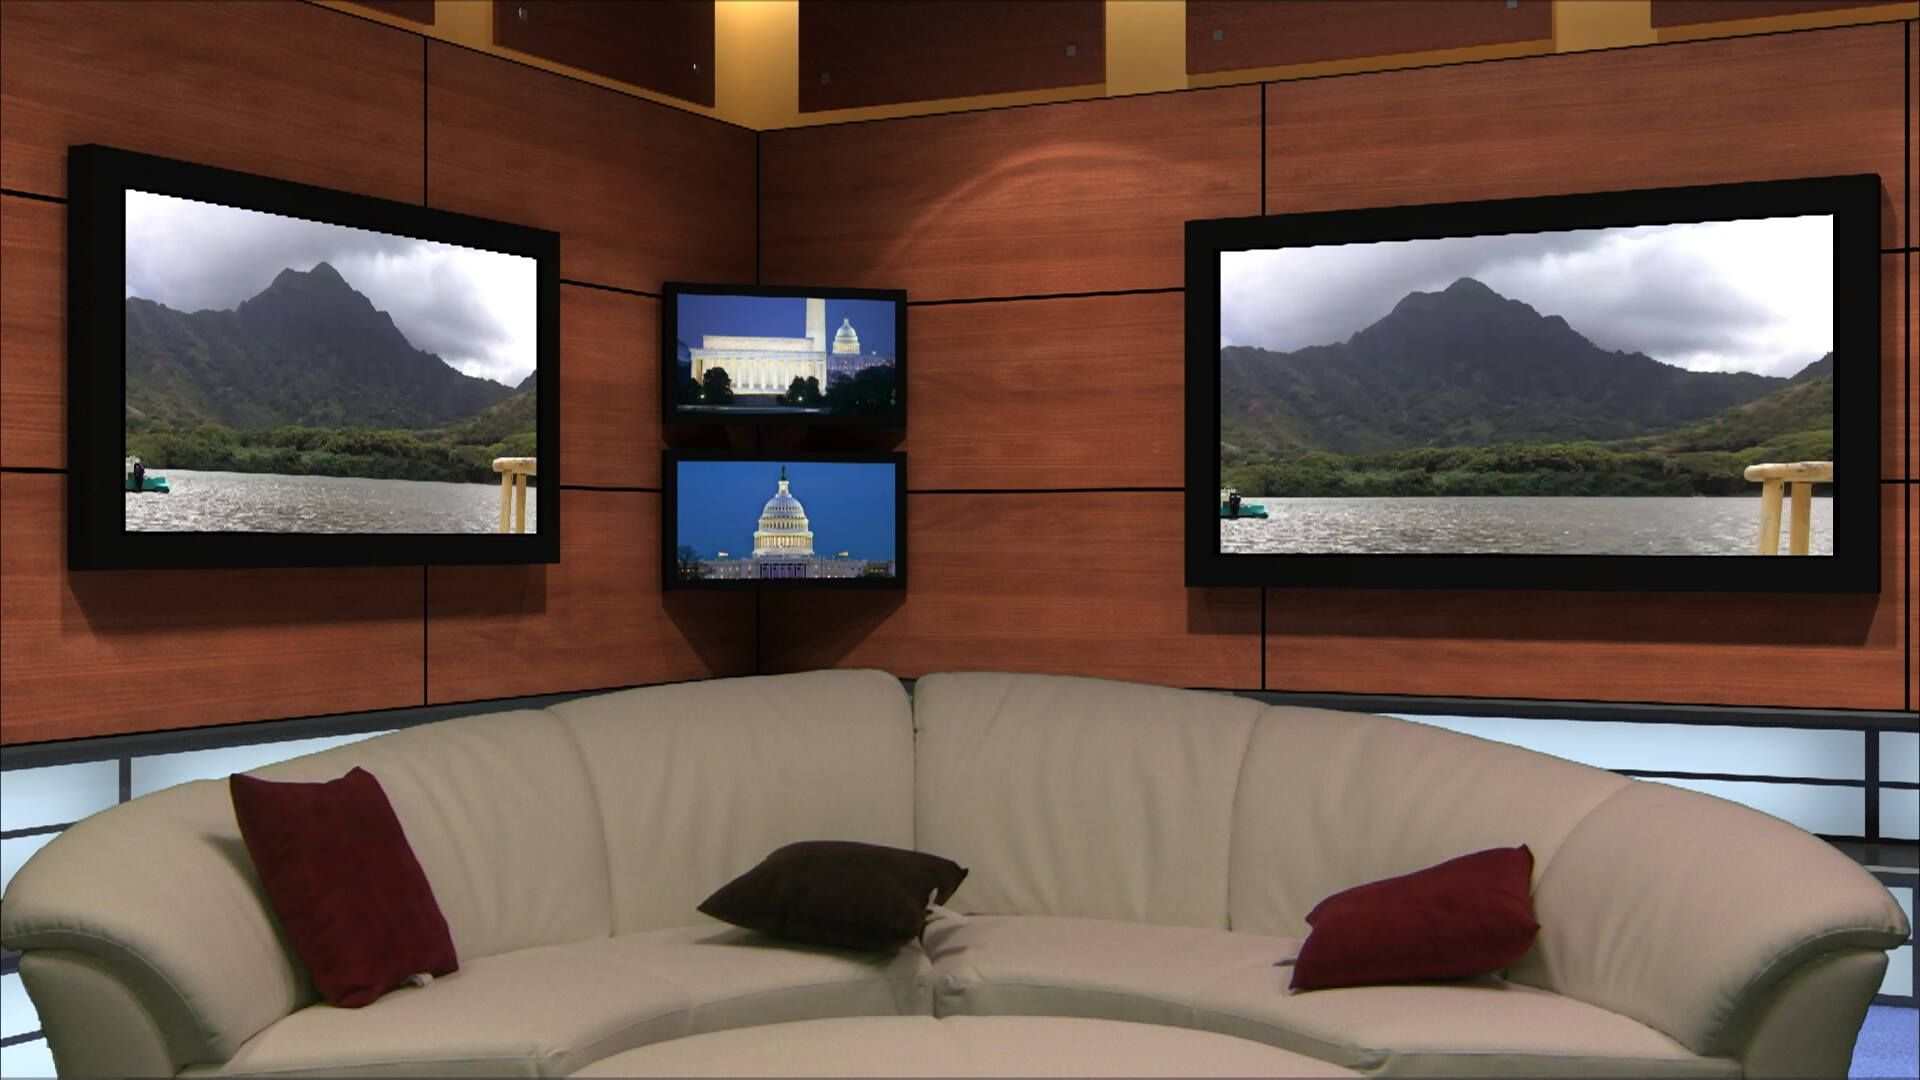 Here S An Example Of What The New Couch Looks Like With A Green Screen Background Pretty And Cool Green Screen Backgrounds Greenscreen Background